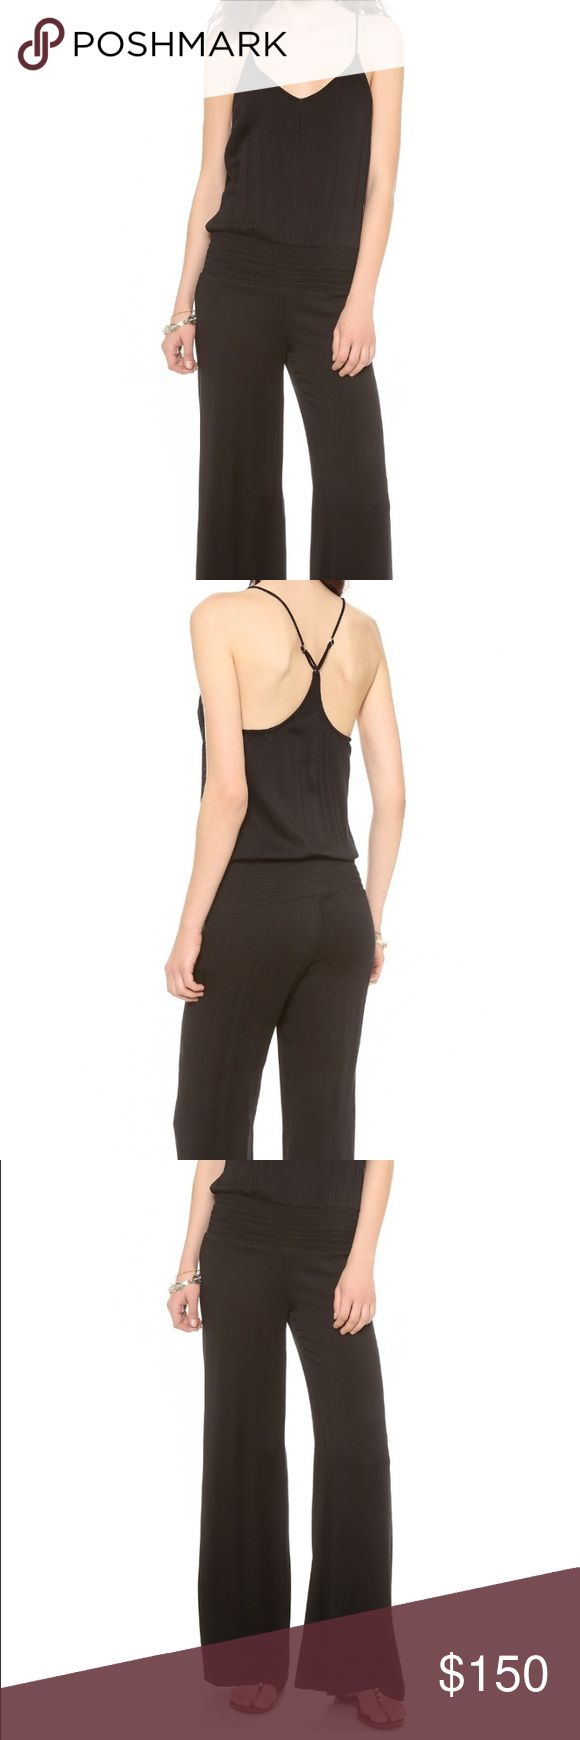 Young Fabulous & Broke Milla Jumpsuit Casual black jumpsuit. Soft jersey. Young Fabulous & Broke Pants Jumpsuits & Rompers